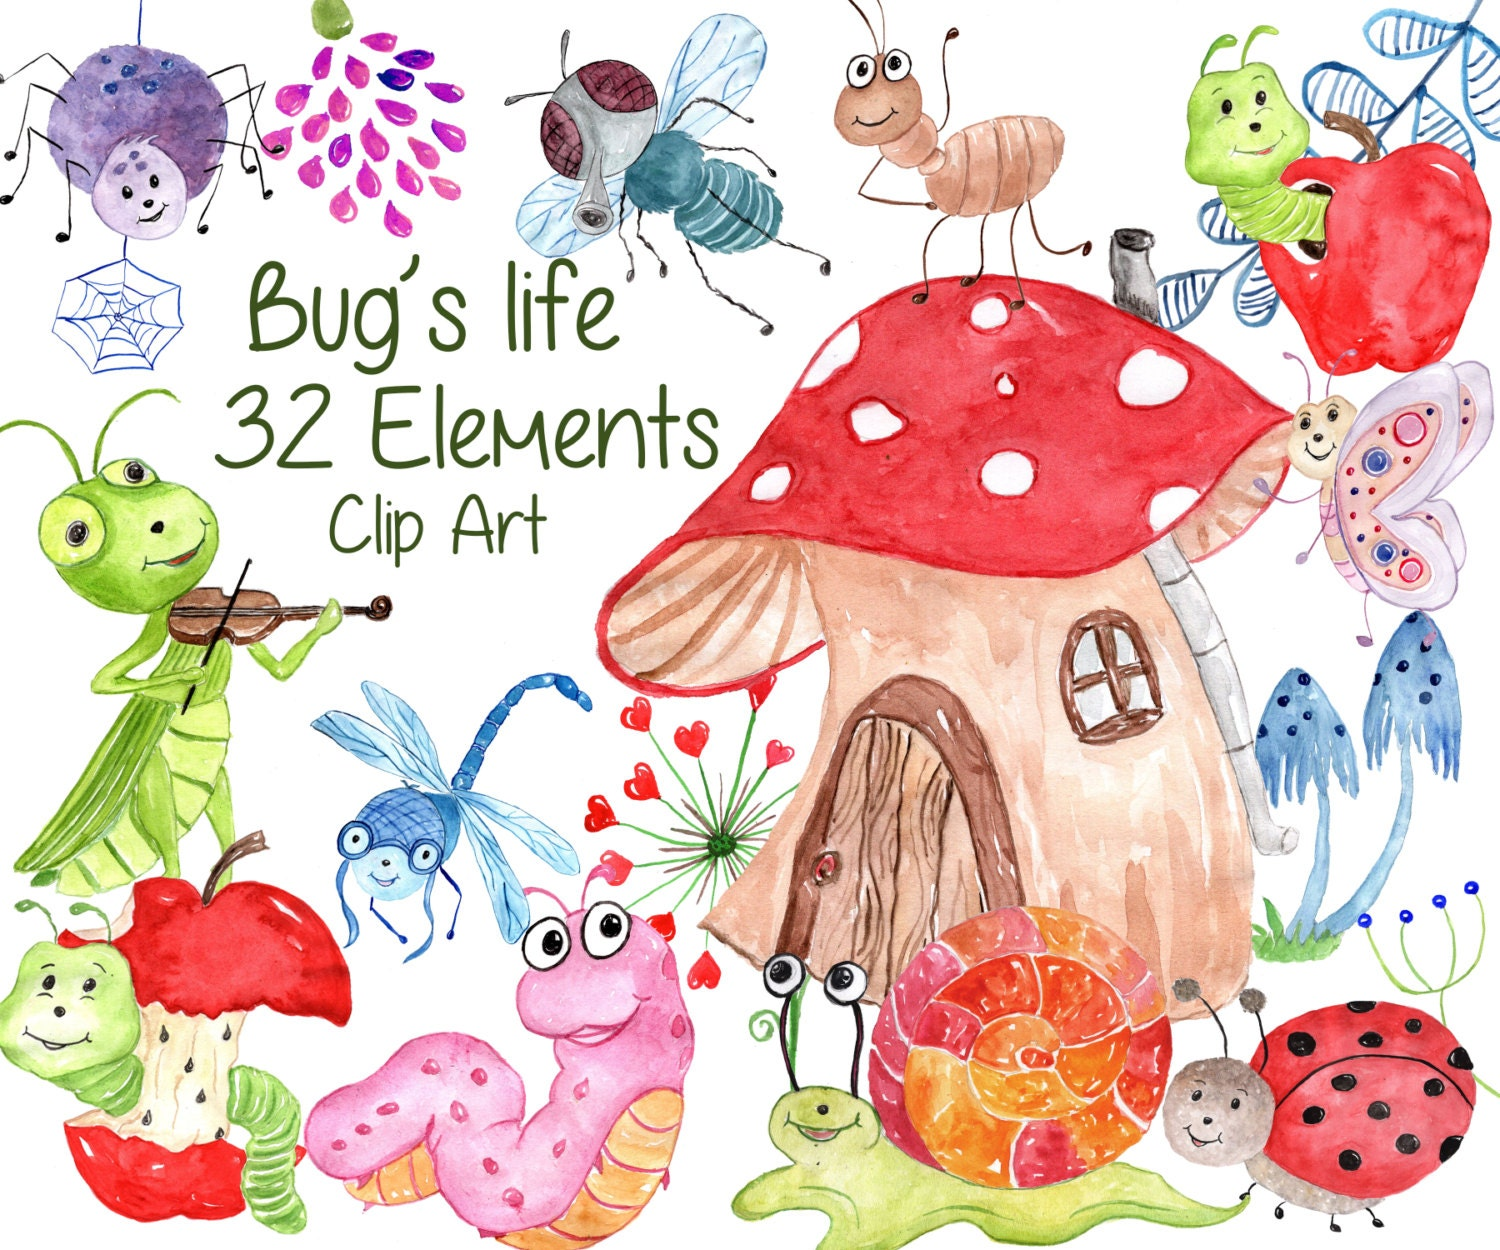 Cute Bugs Clipart:BUGS CLIPART Watercolor bugs